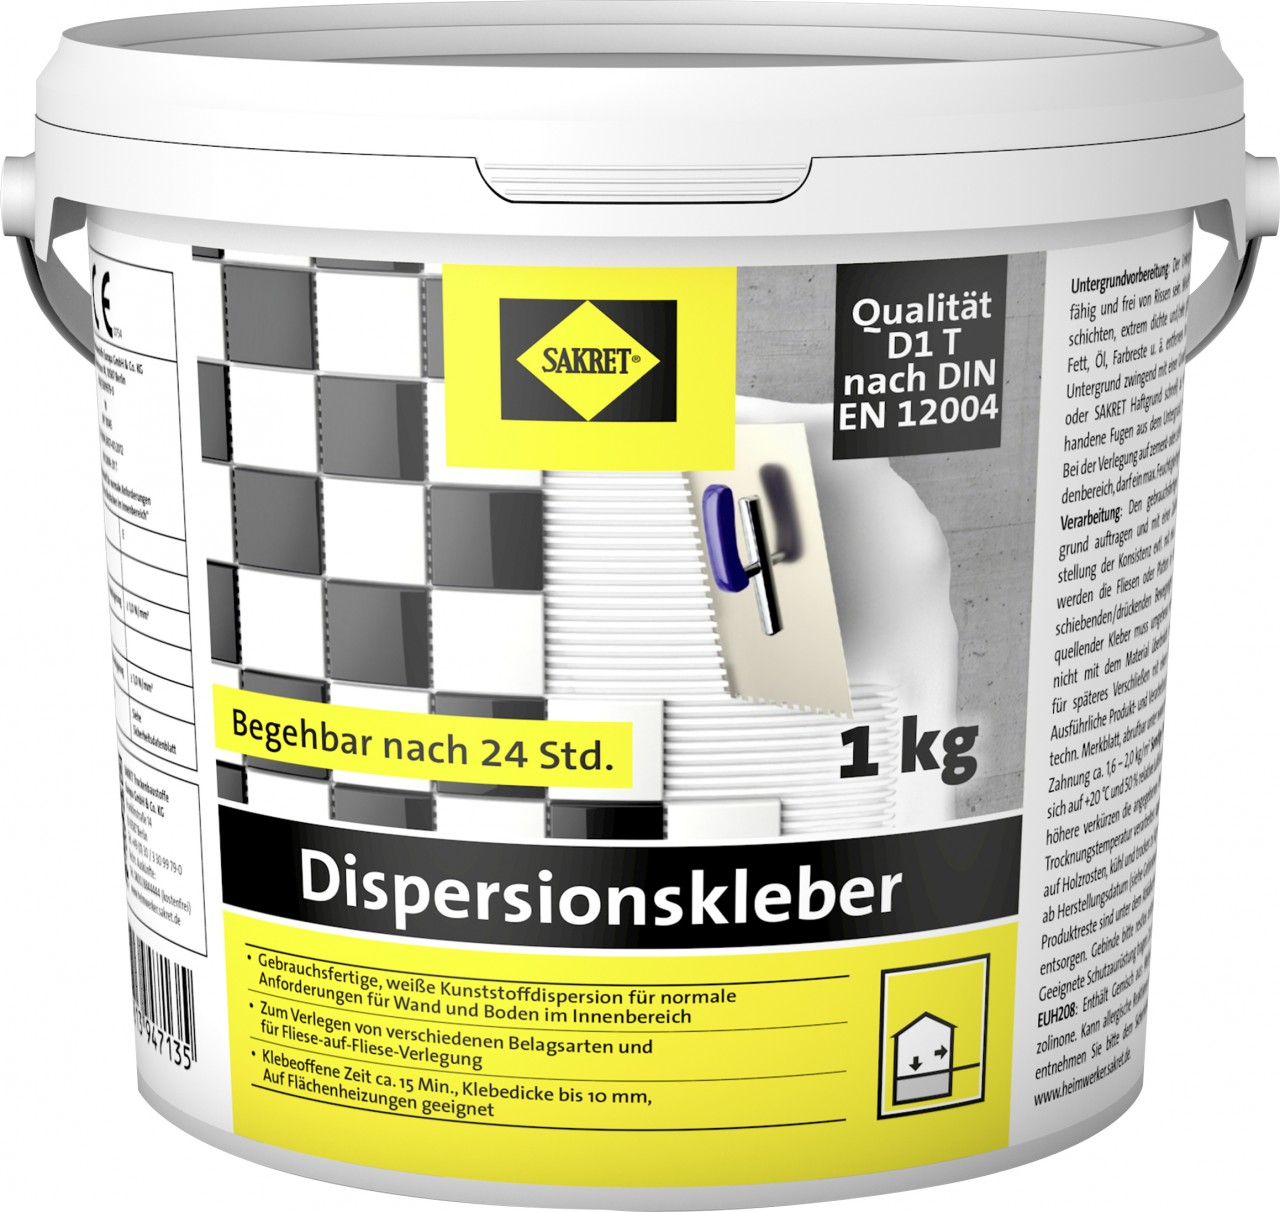 Sakret Dispersionskleber 1 kg